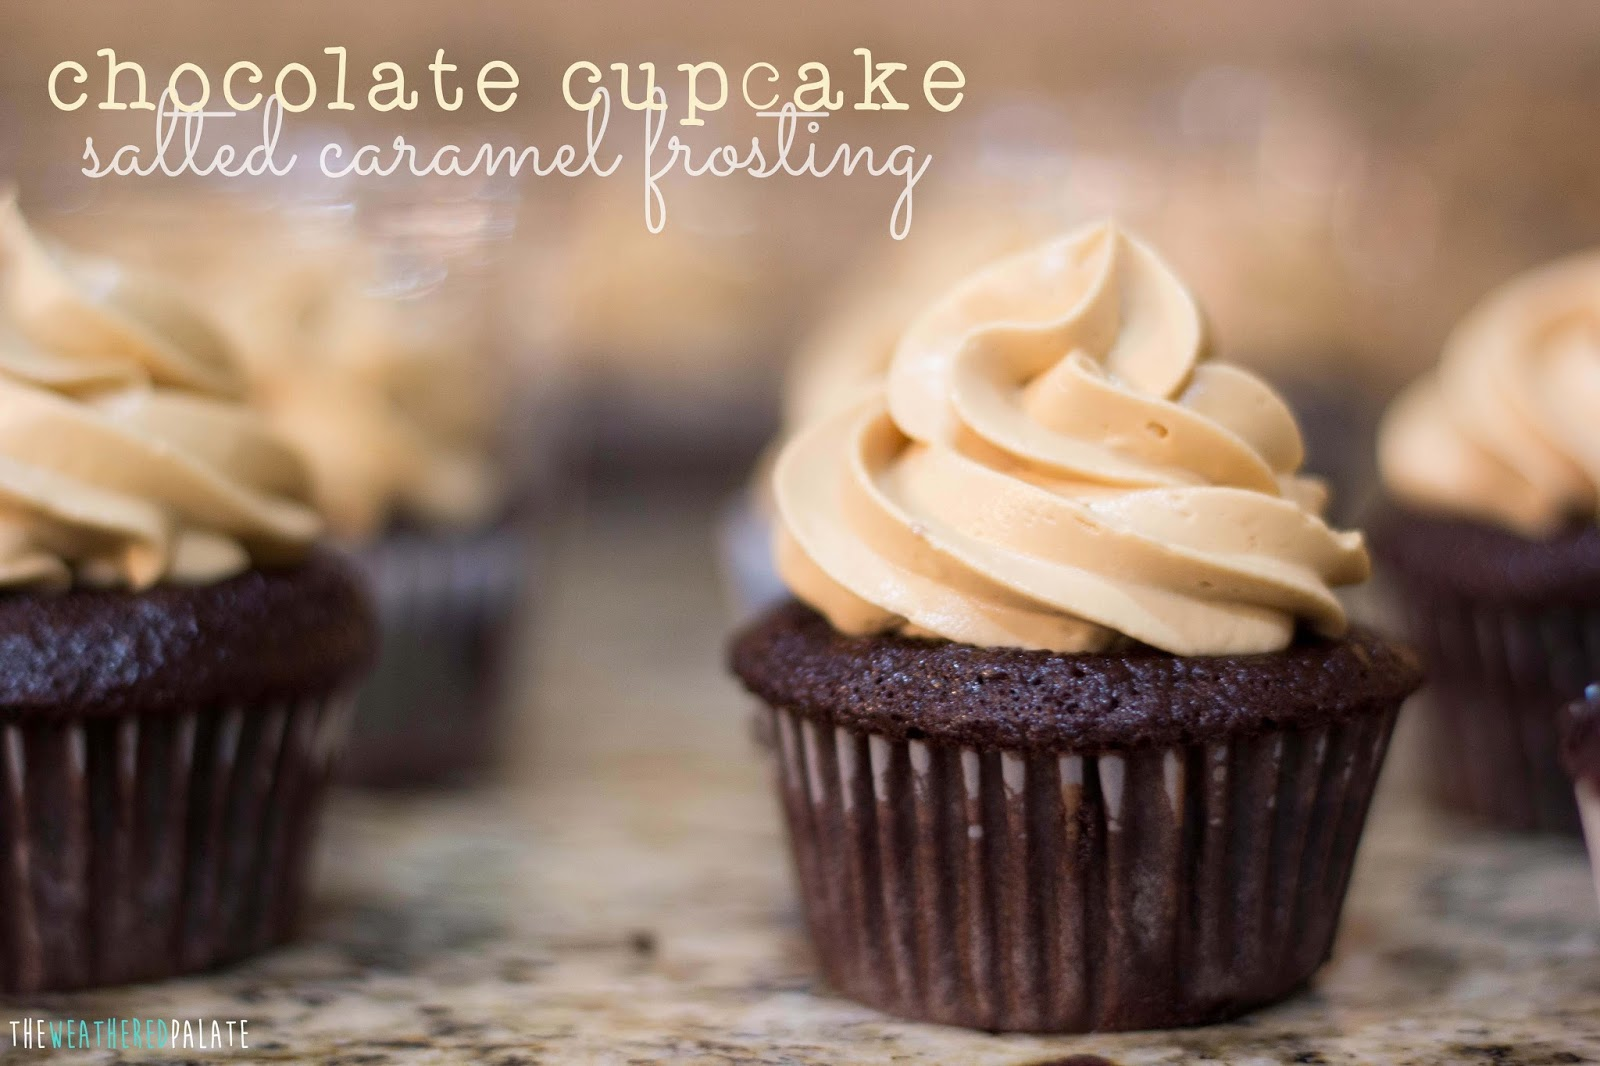 http://www.theweatheredpalate.com/2014/09/chocolate-cupcake-with-salted-caramel.html